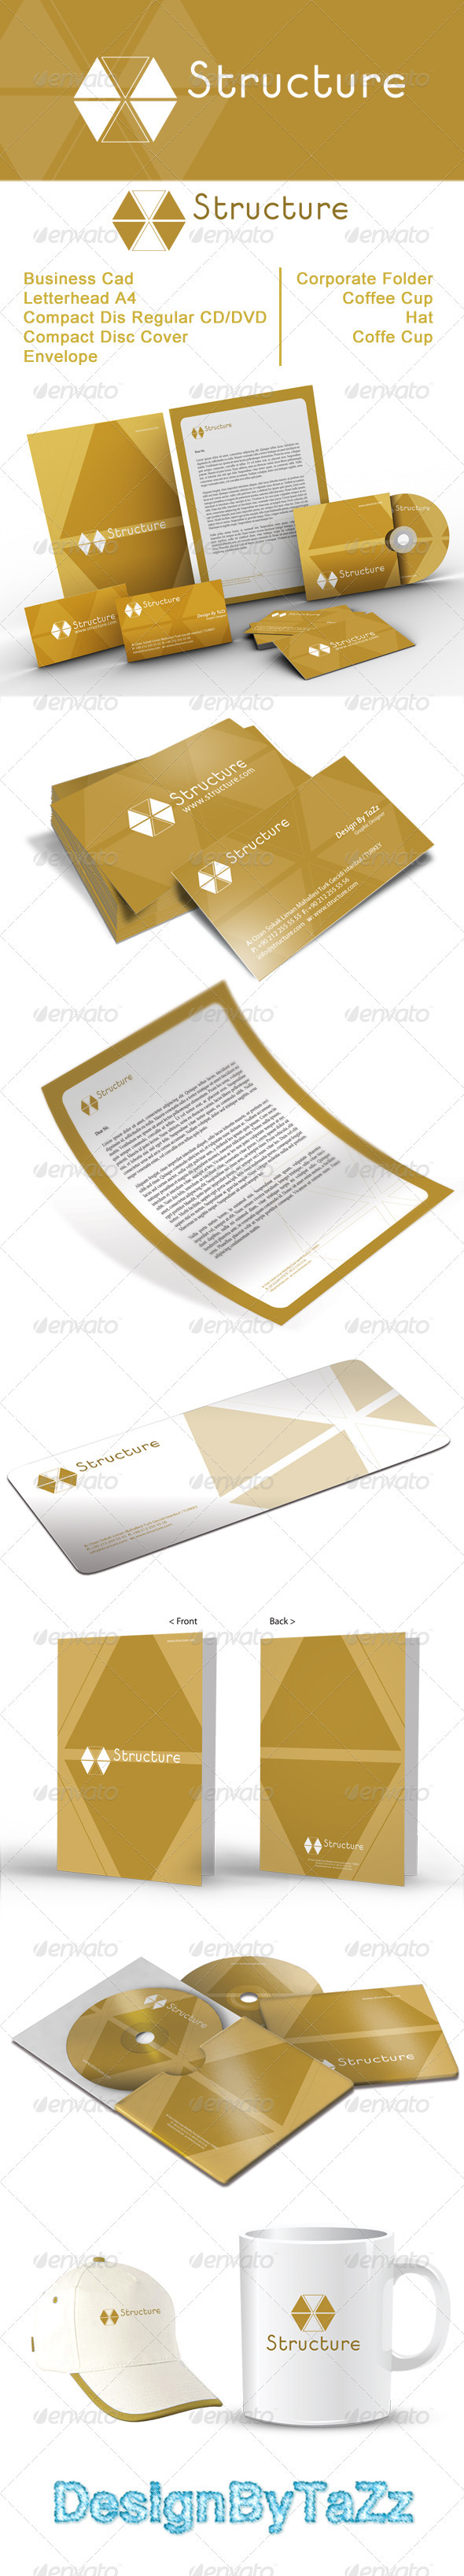 Structure Corporate Identity Package - Stationery Print Templates